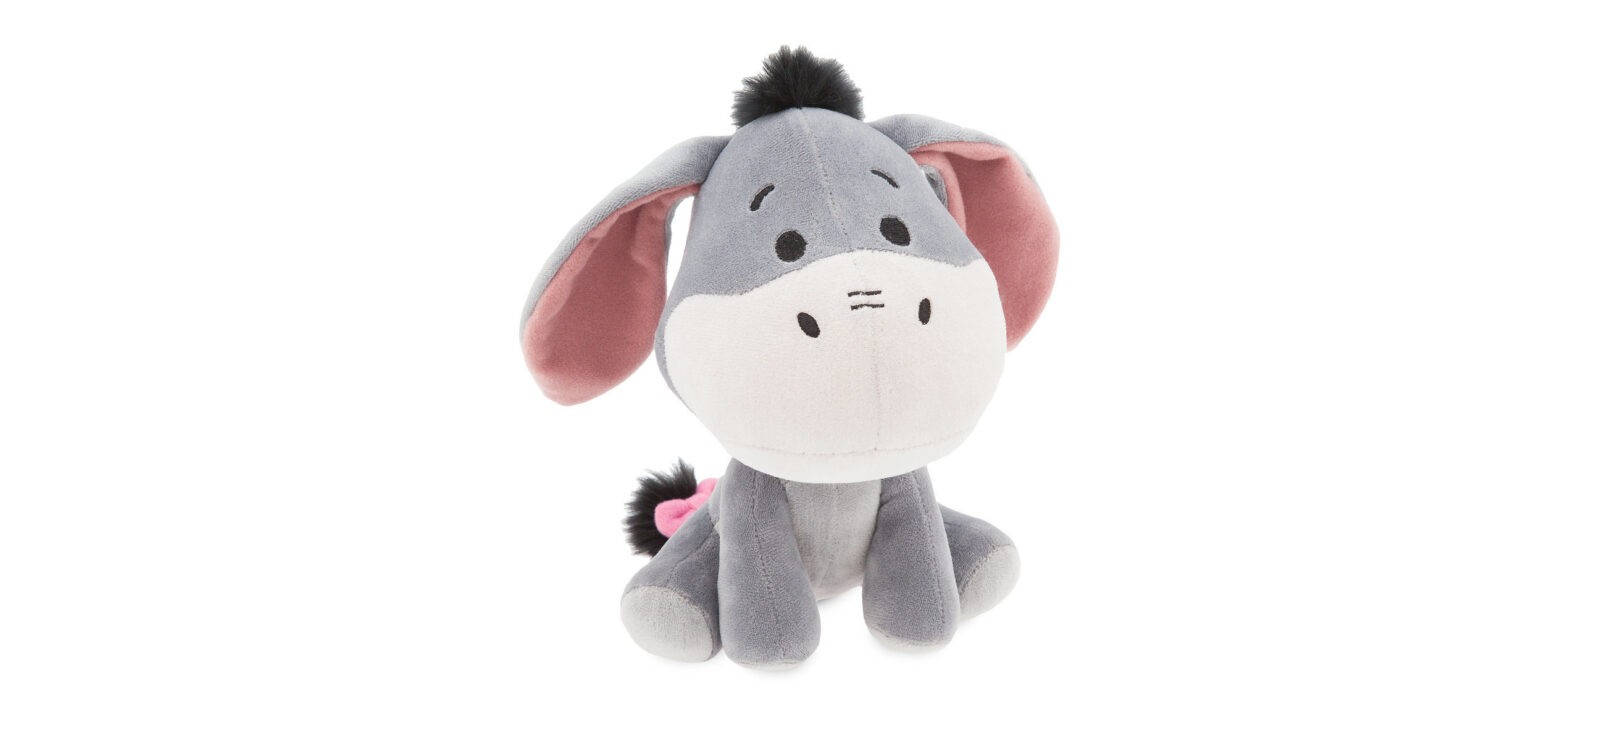 a new eeyore plush looking for a forever home